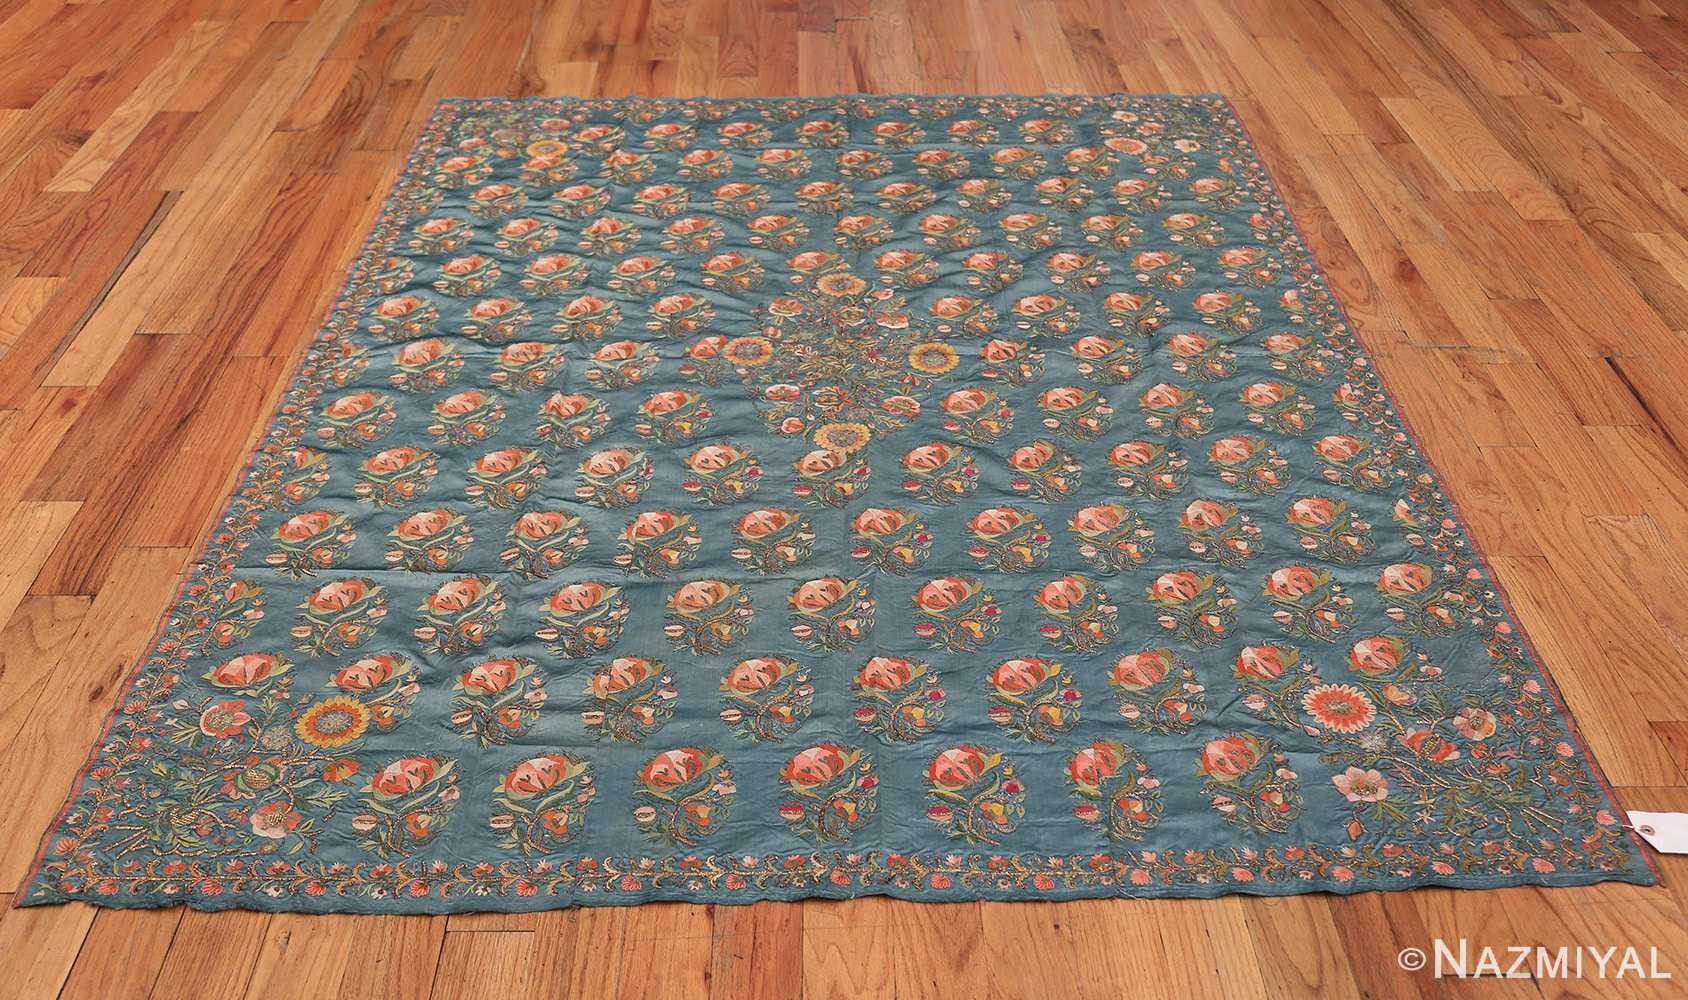 Collectible Antique Ottoman Silk Embroidery 42621 Whole Design Nazmiyal